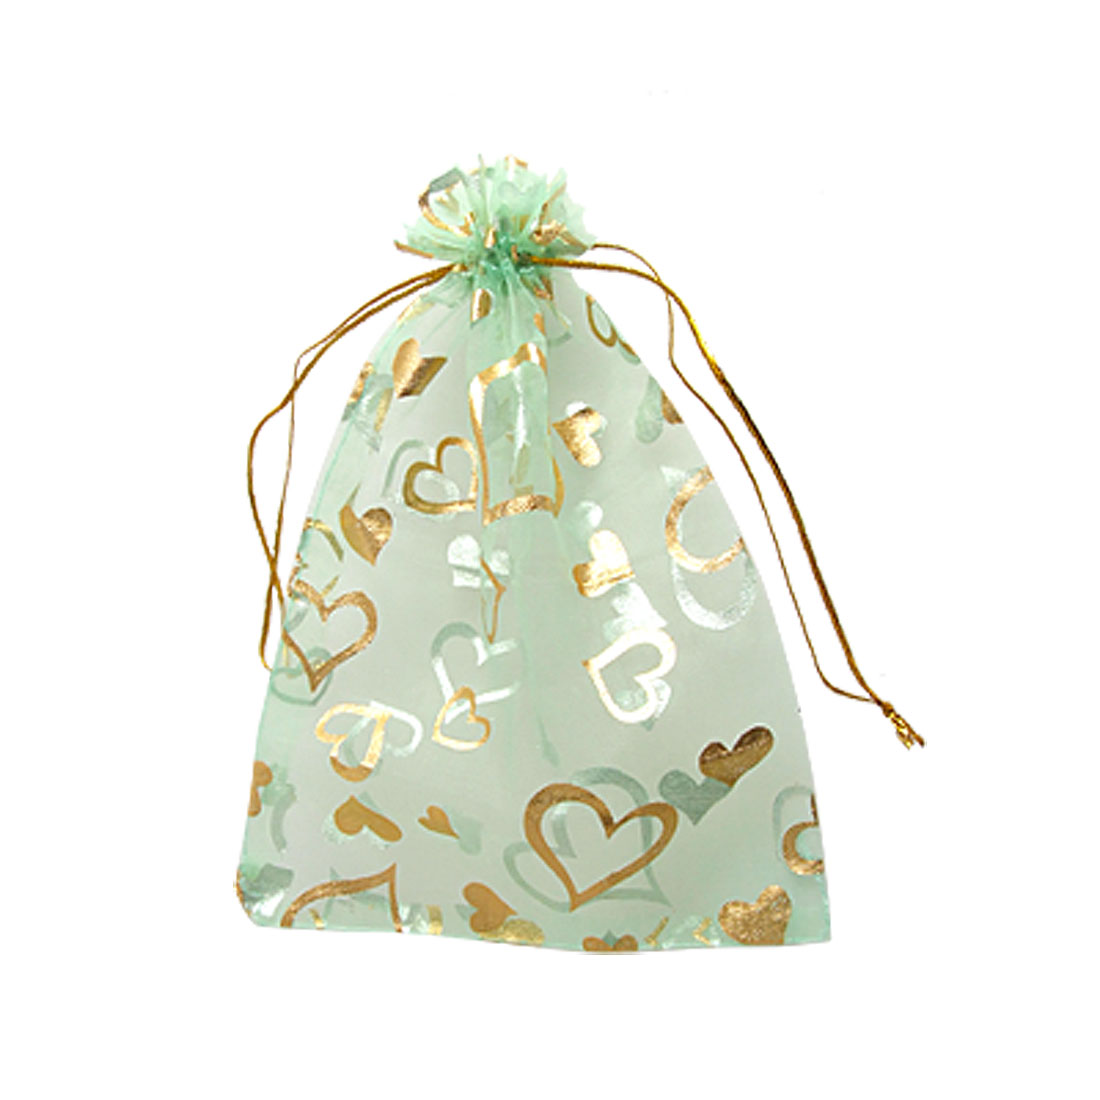 "5 Pcs 7"" x 5"" Heart Print Wedding Xmas Organza Pouch Bag Green"